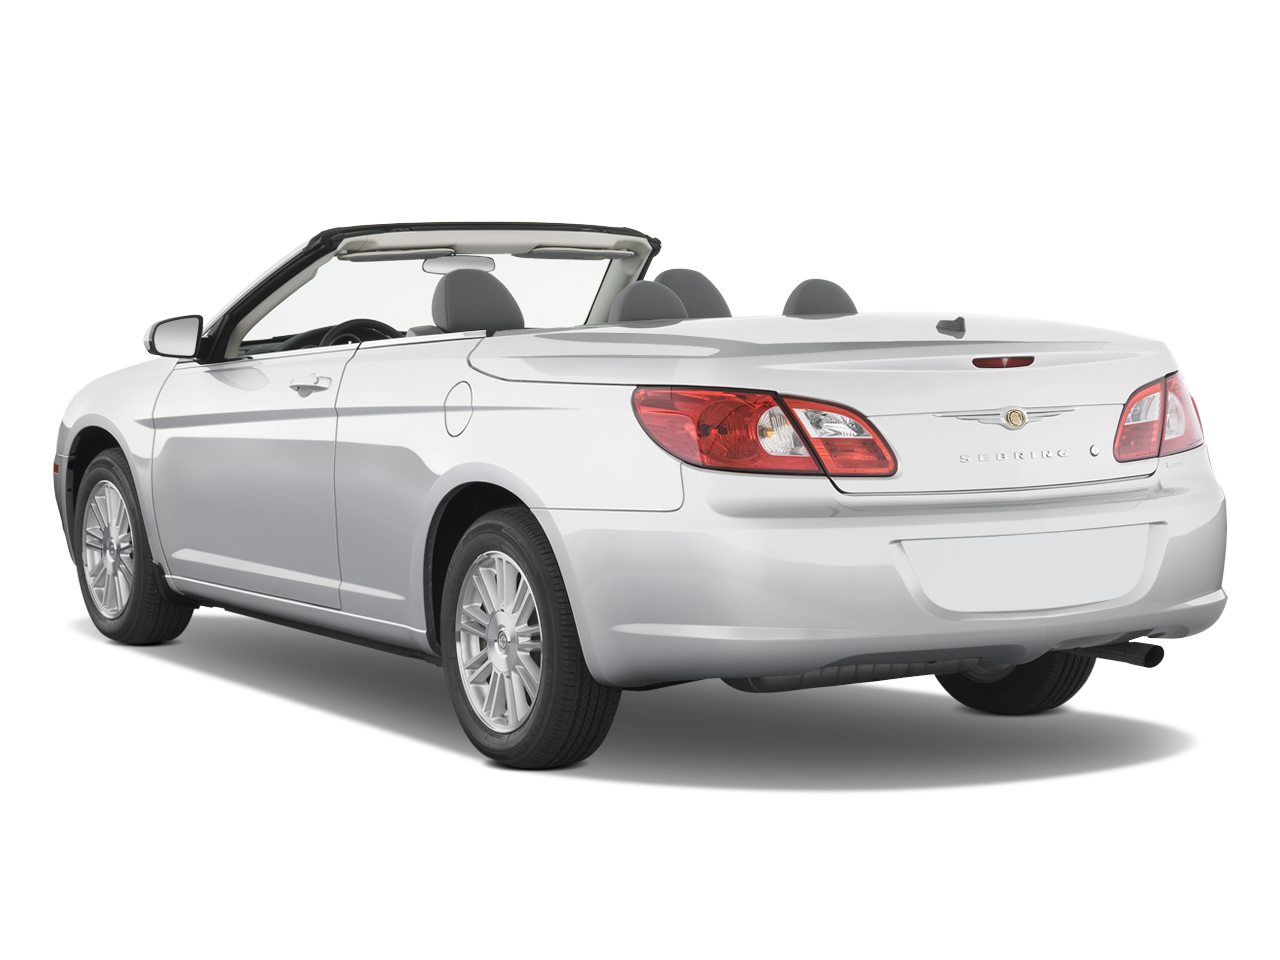 2008 chrysler sebring convertible latest news auto show coverage and future cars. Black Bedroom Furniture Sets. Home Design Ideas